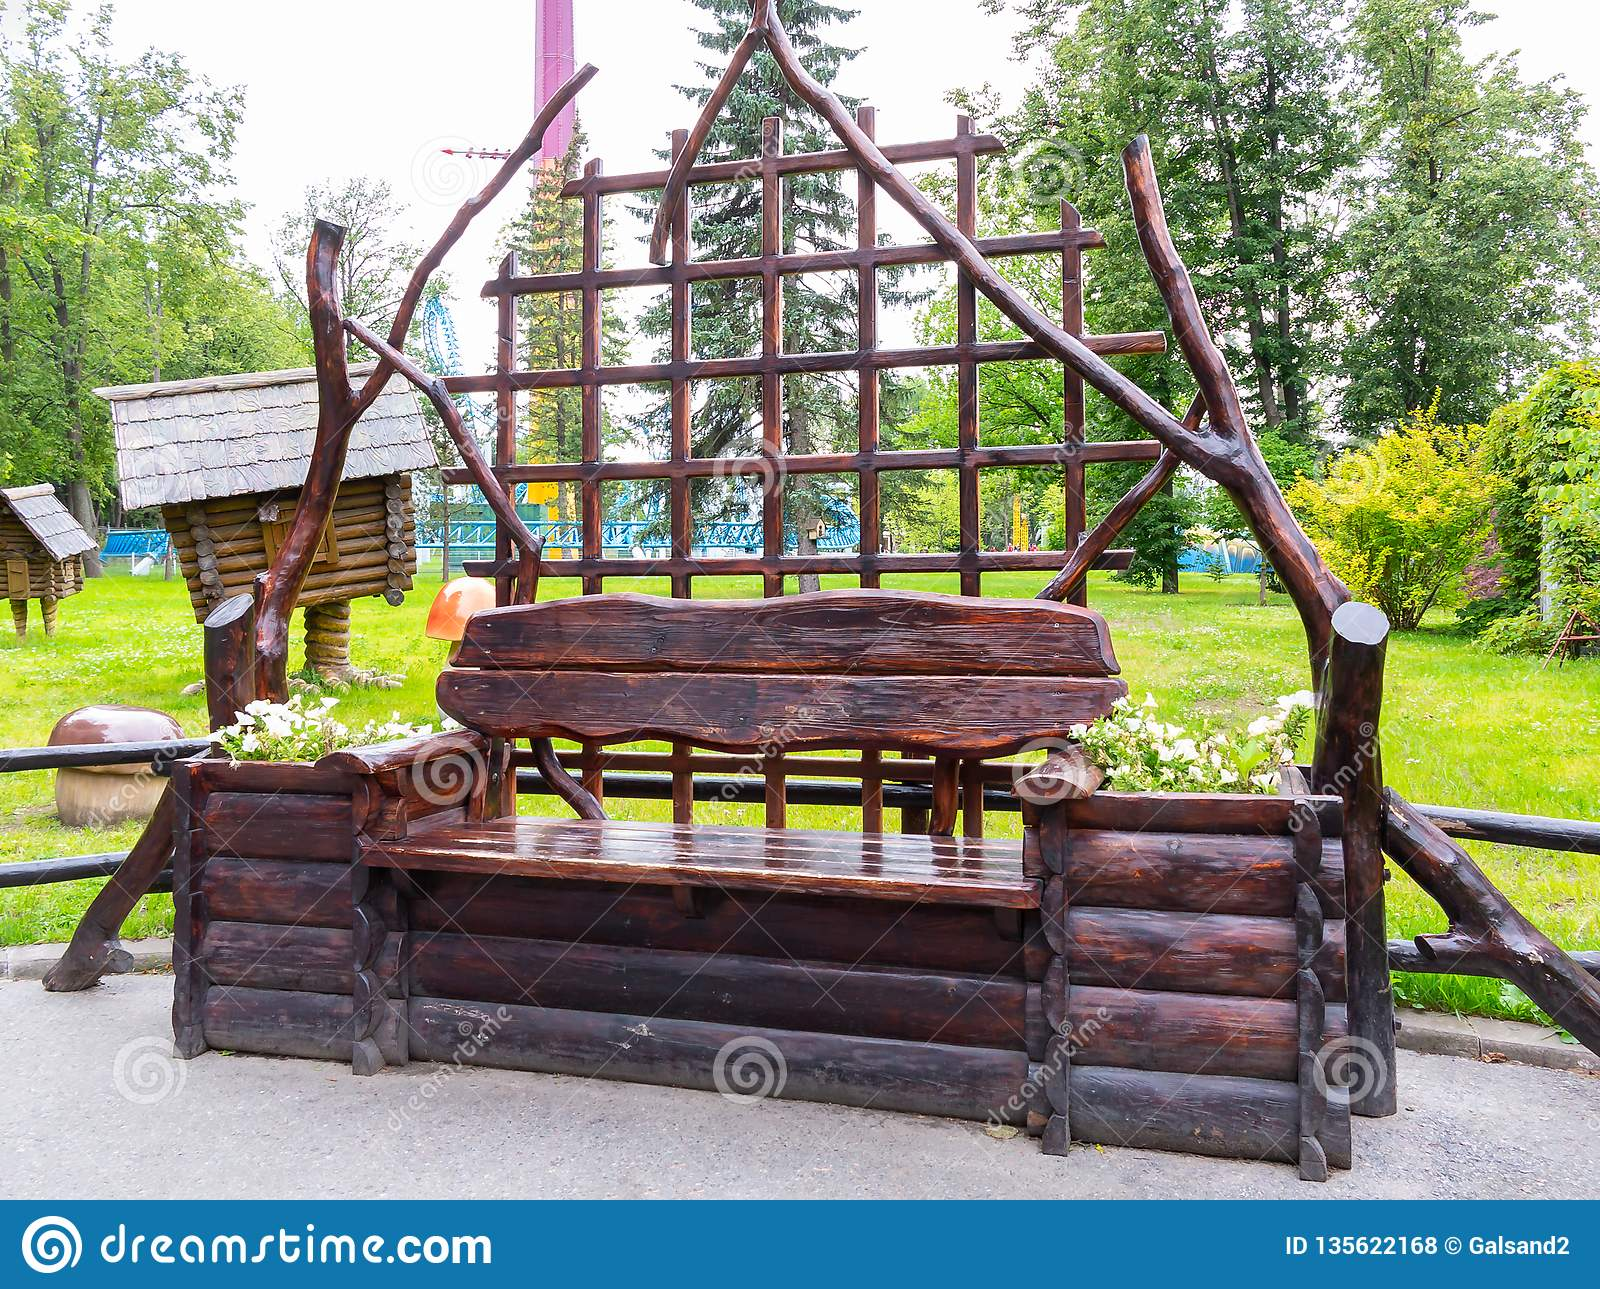 St. Petersburg, Russia - July 10, 2018: Wooden bench made of logs with a back in the city park